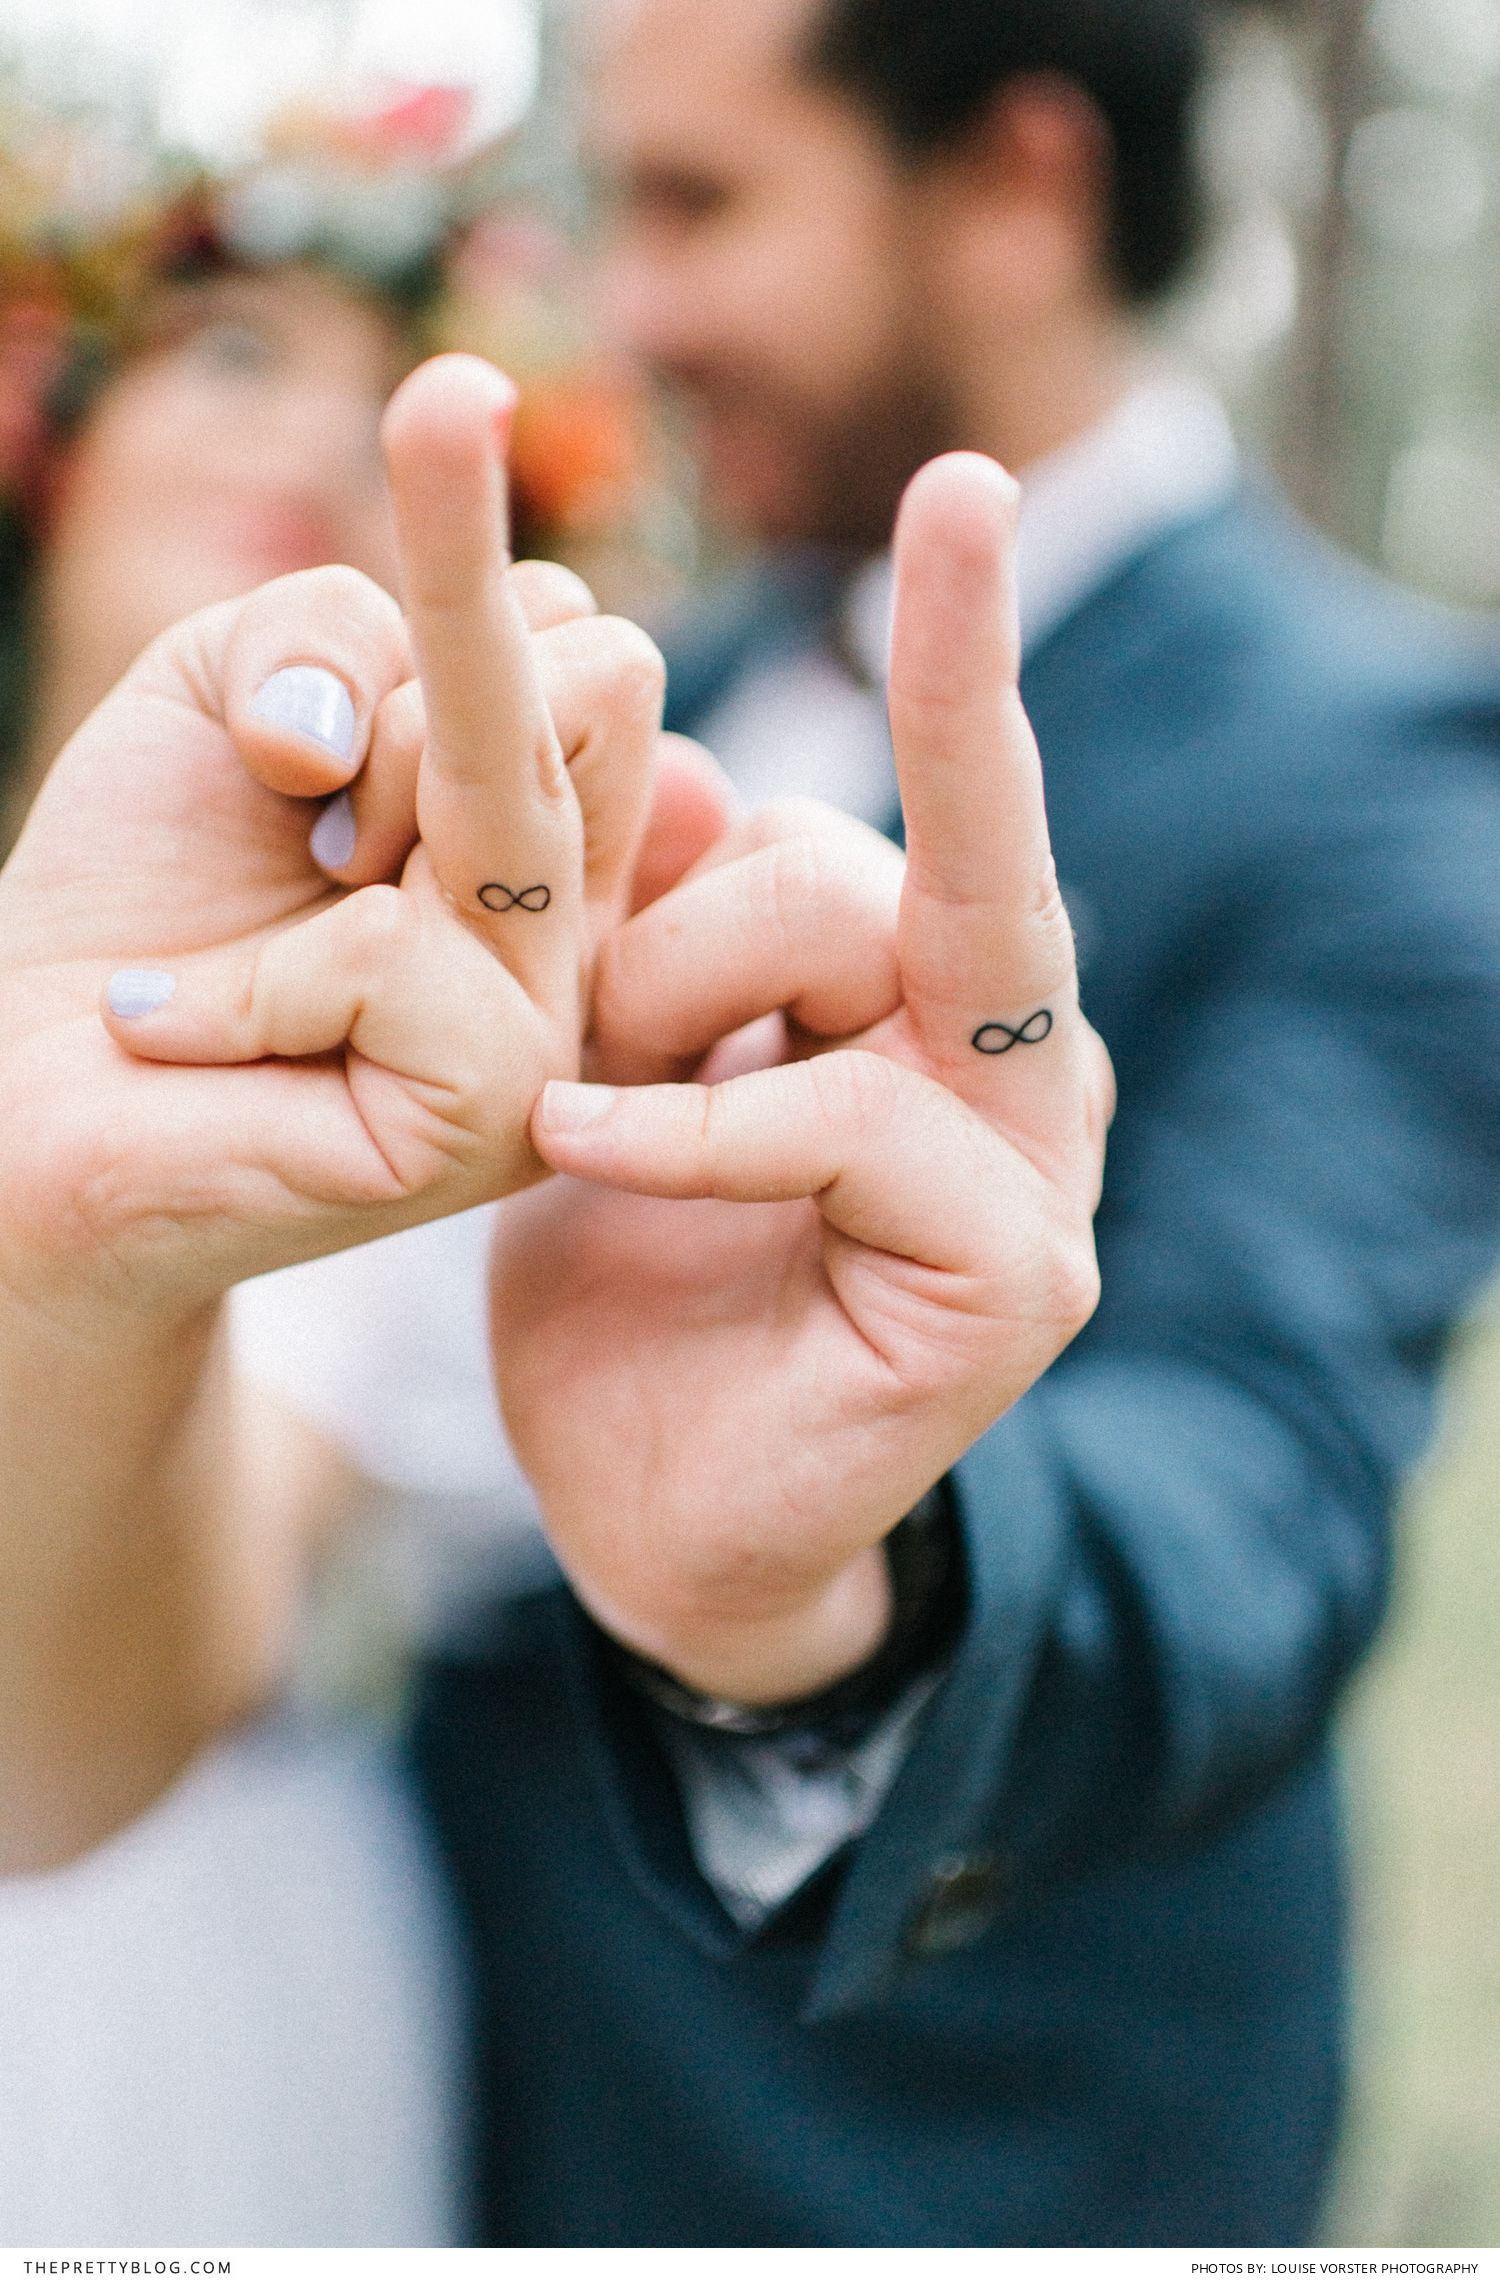 Infinity Wedding Ring Tattoos: An Eclectic Elopement!